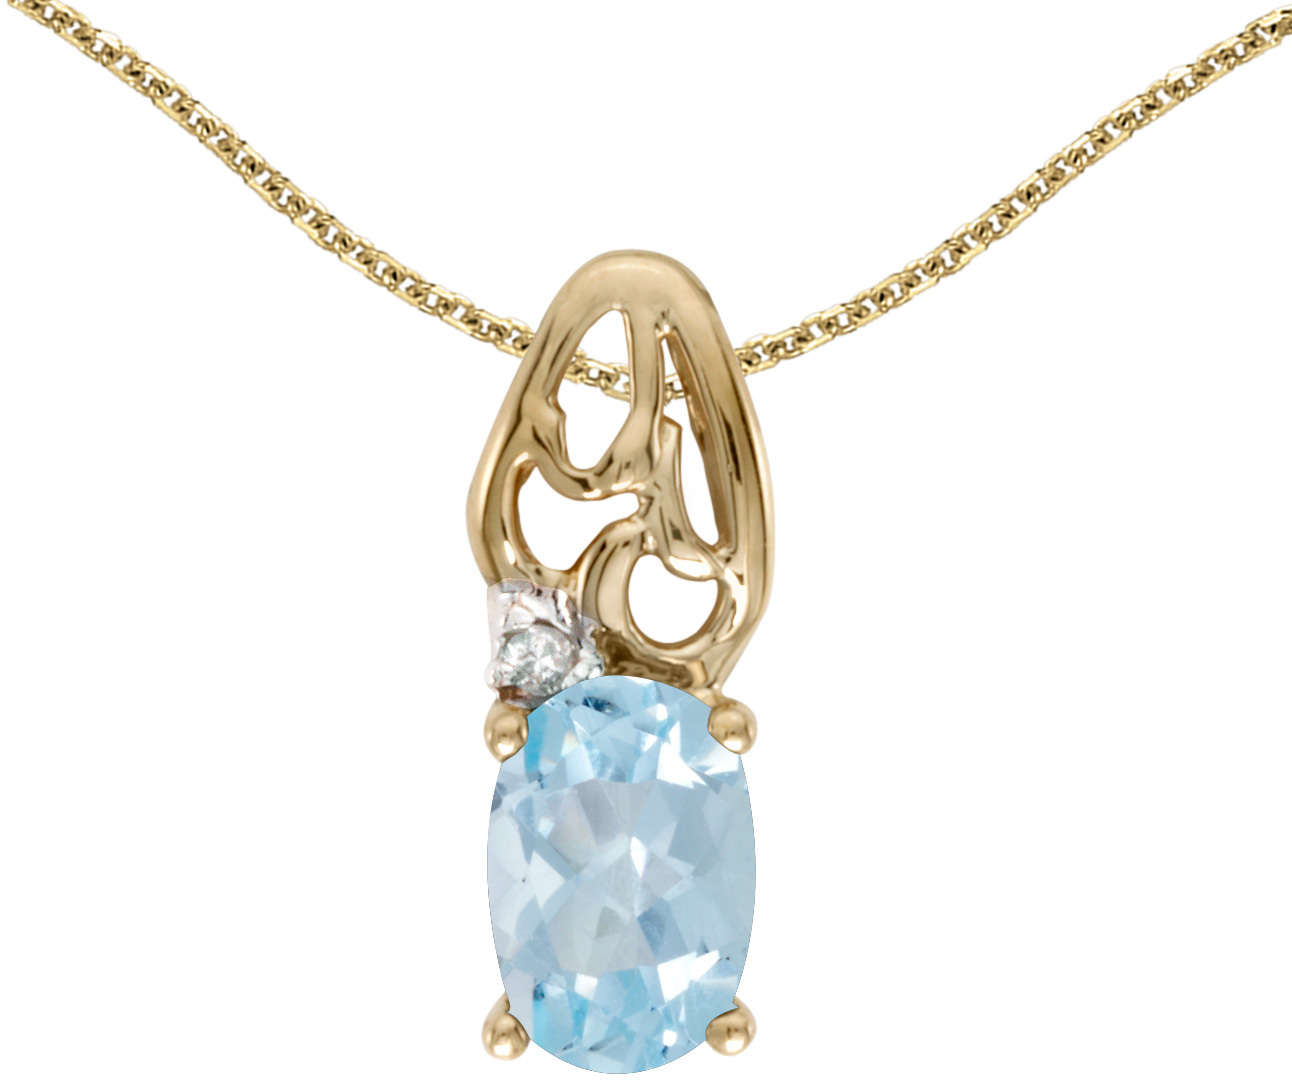 10k Yellow Gold Oval Aquamarine & Diamond Pendant (Chain NOT included) P2582-03